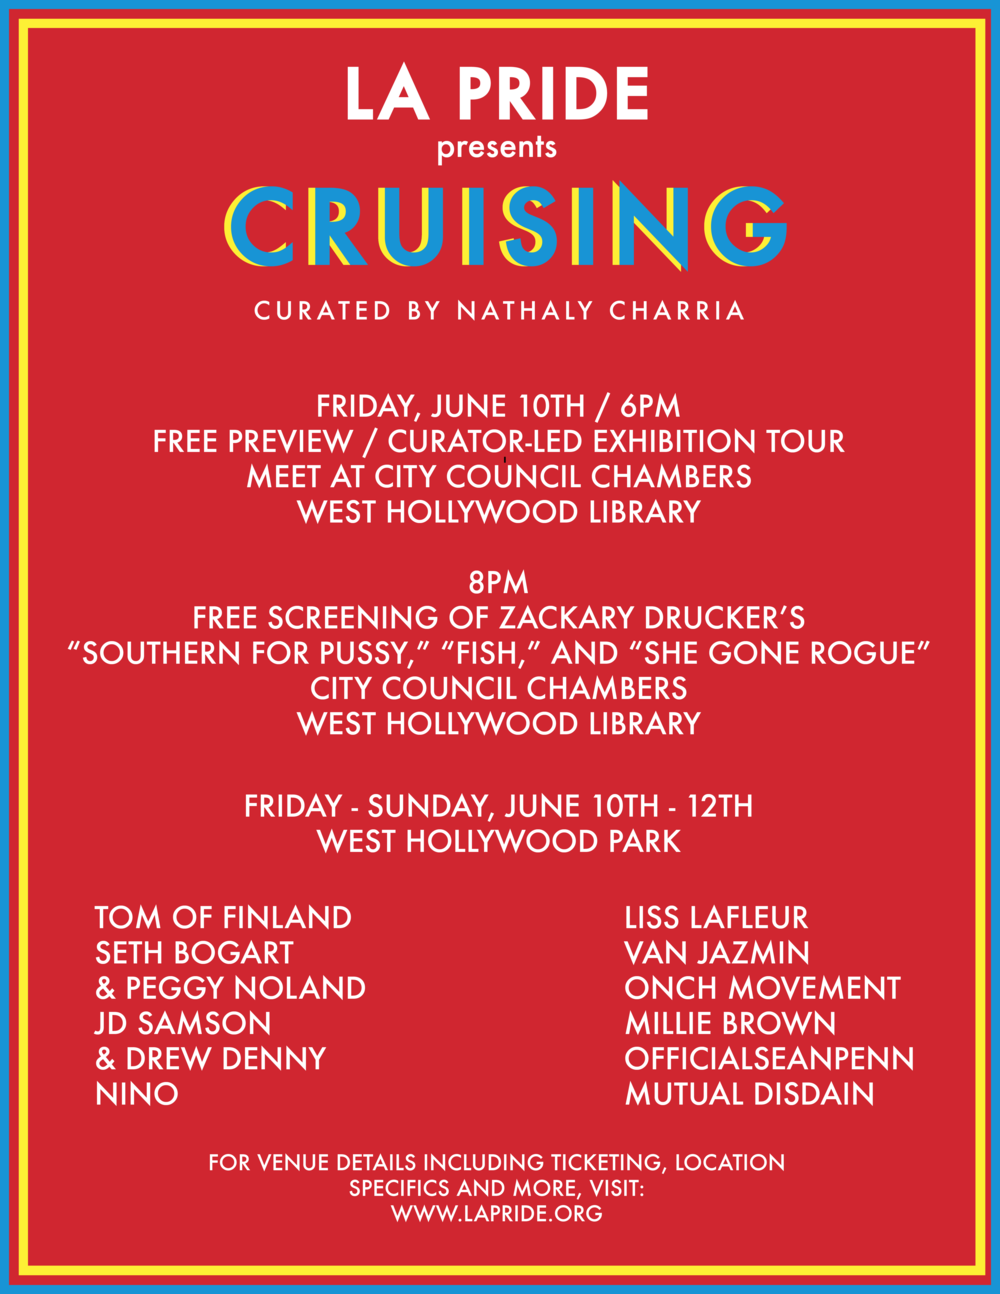 CRUISING LA PRIDE INVITE curated by Nathaly Charria FINAL.png